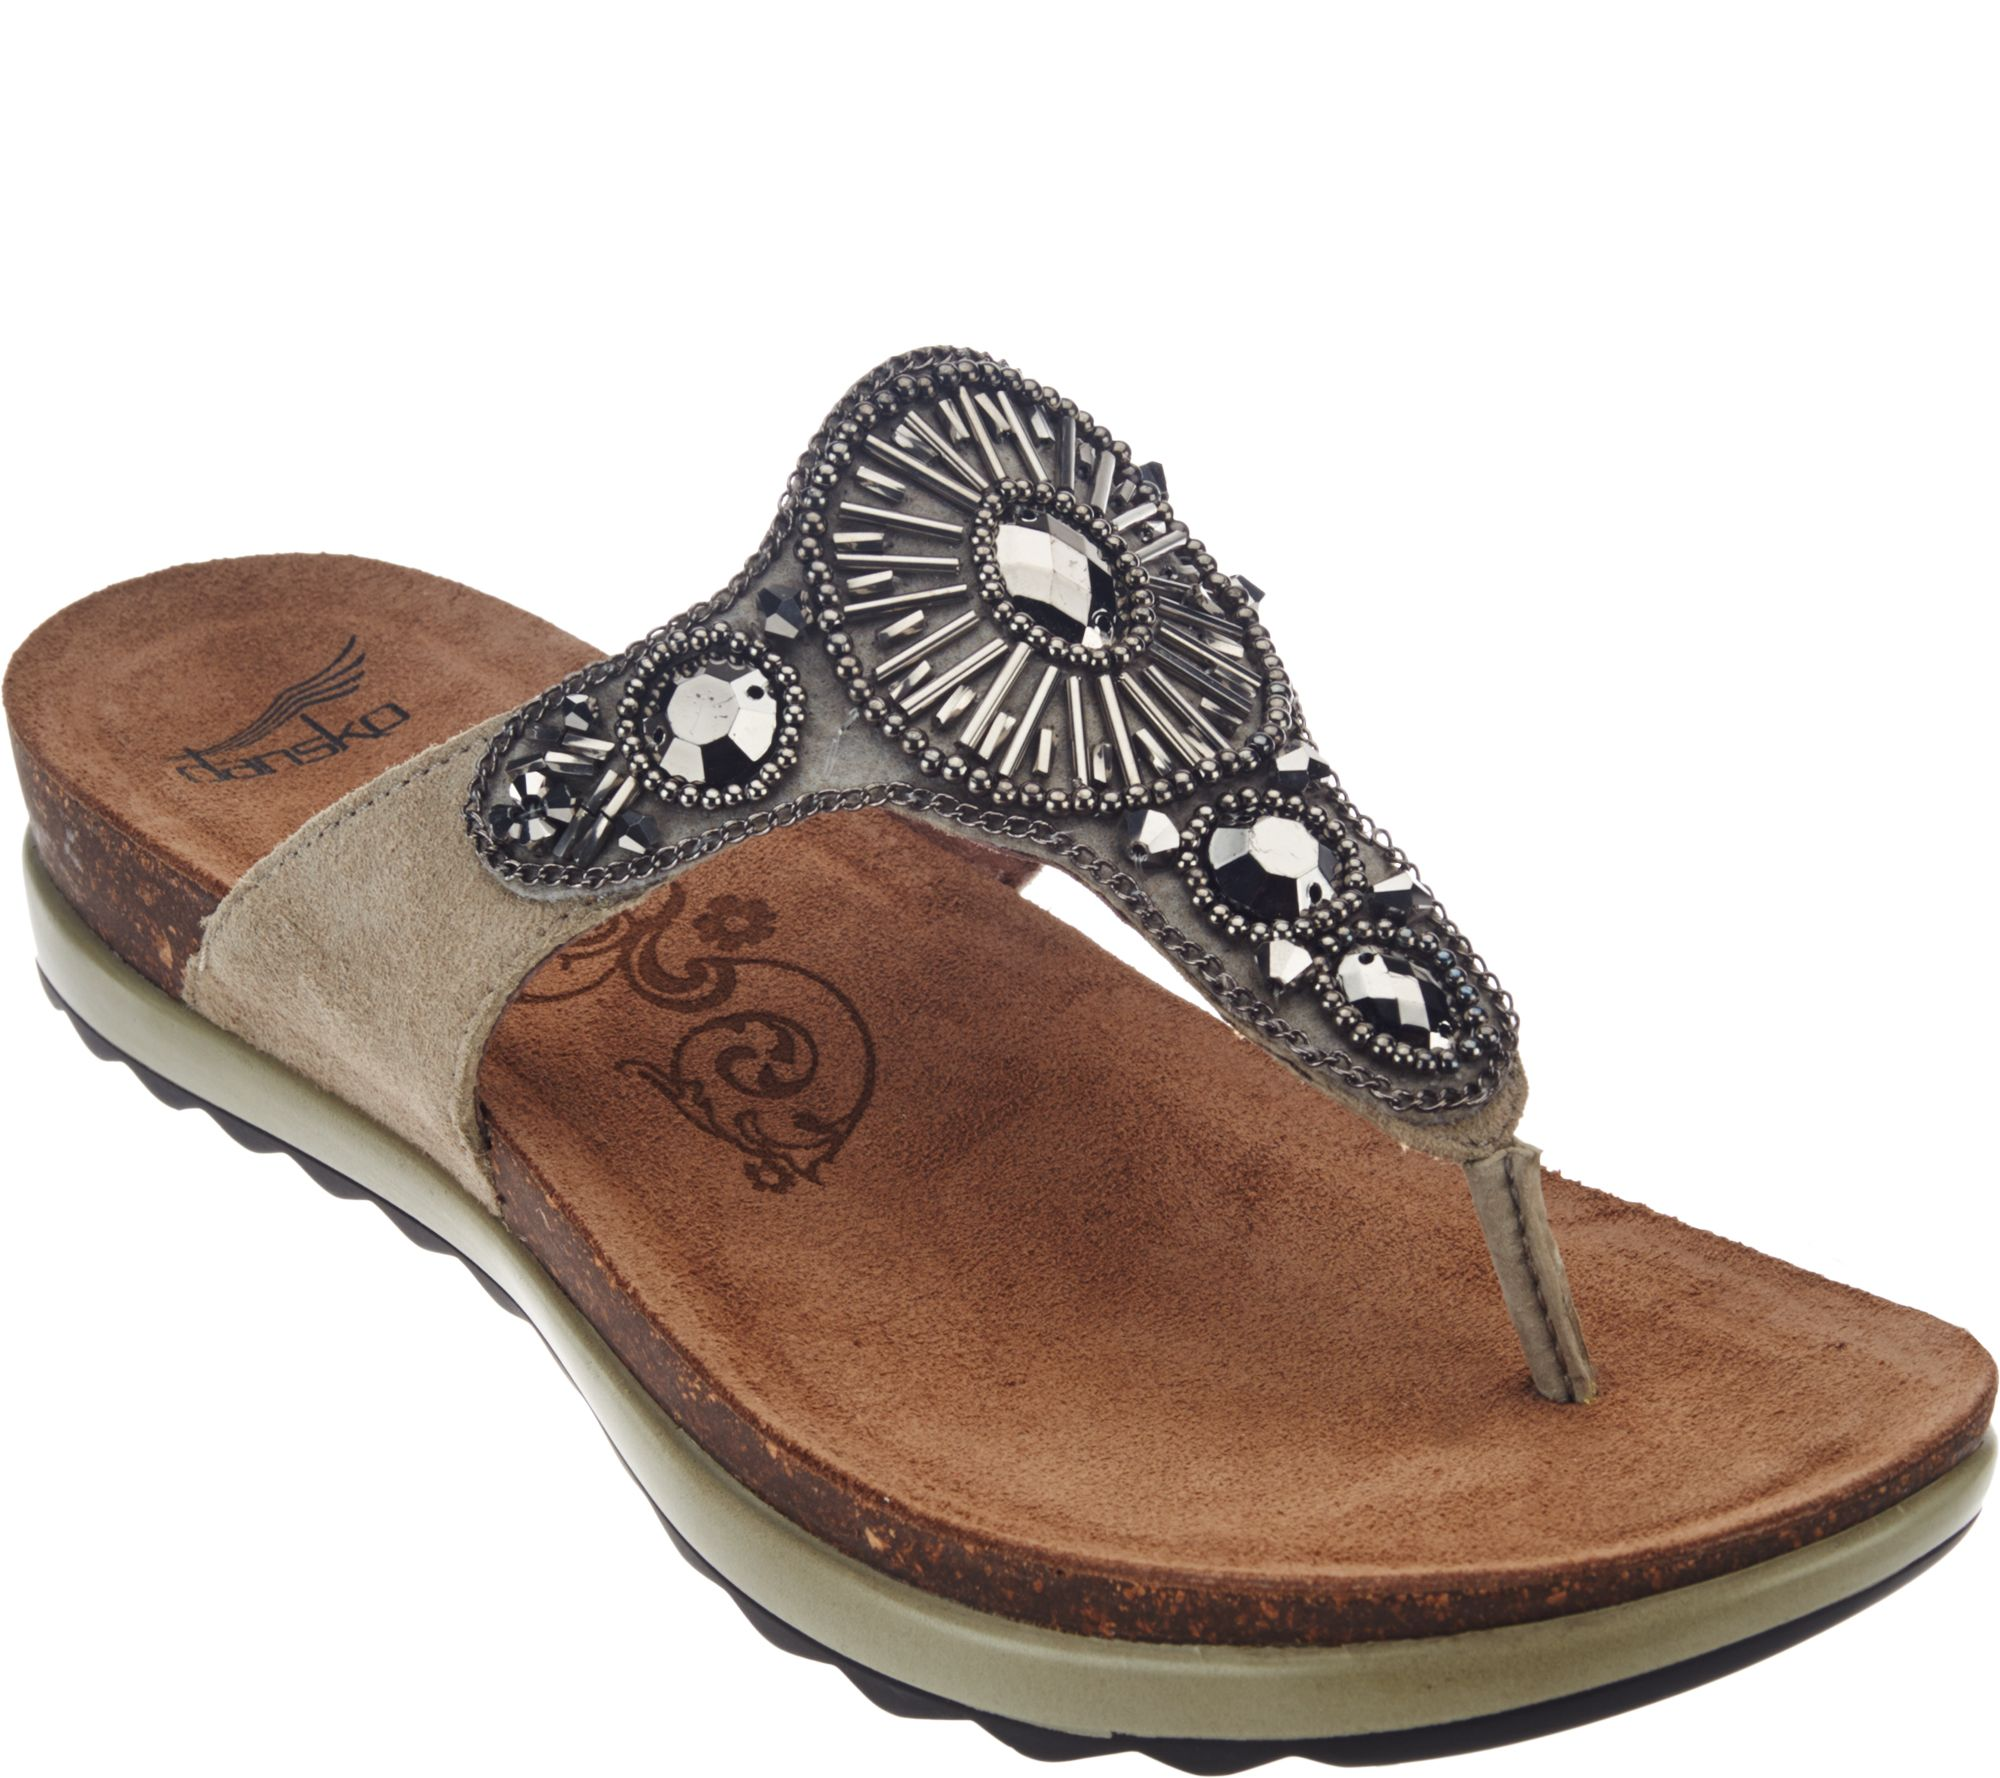 6a04202d8a14 Dansko Leather Embellished Thong Sandals - Pamela - Page 1 — QVC.com